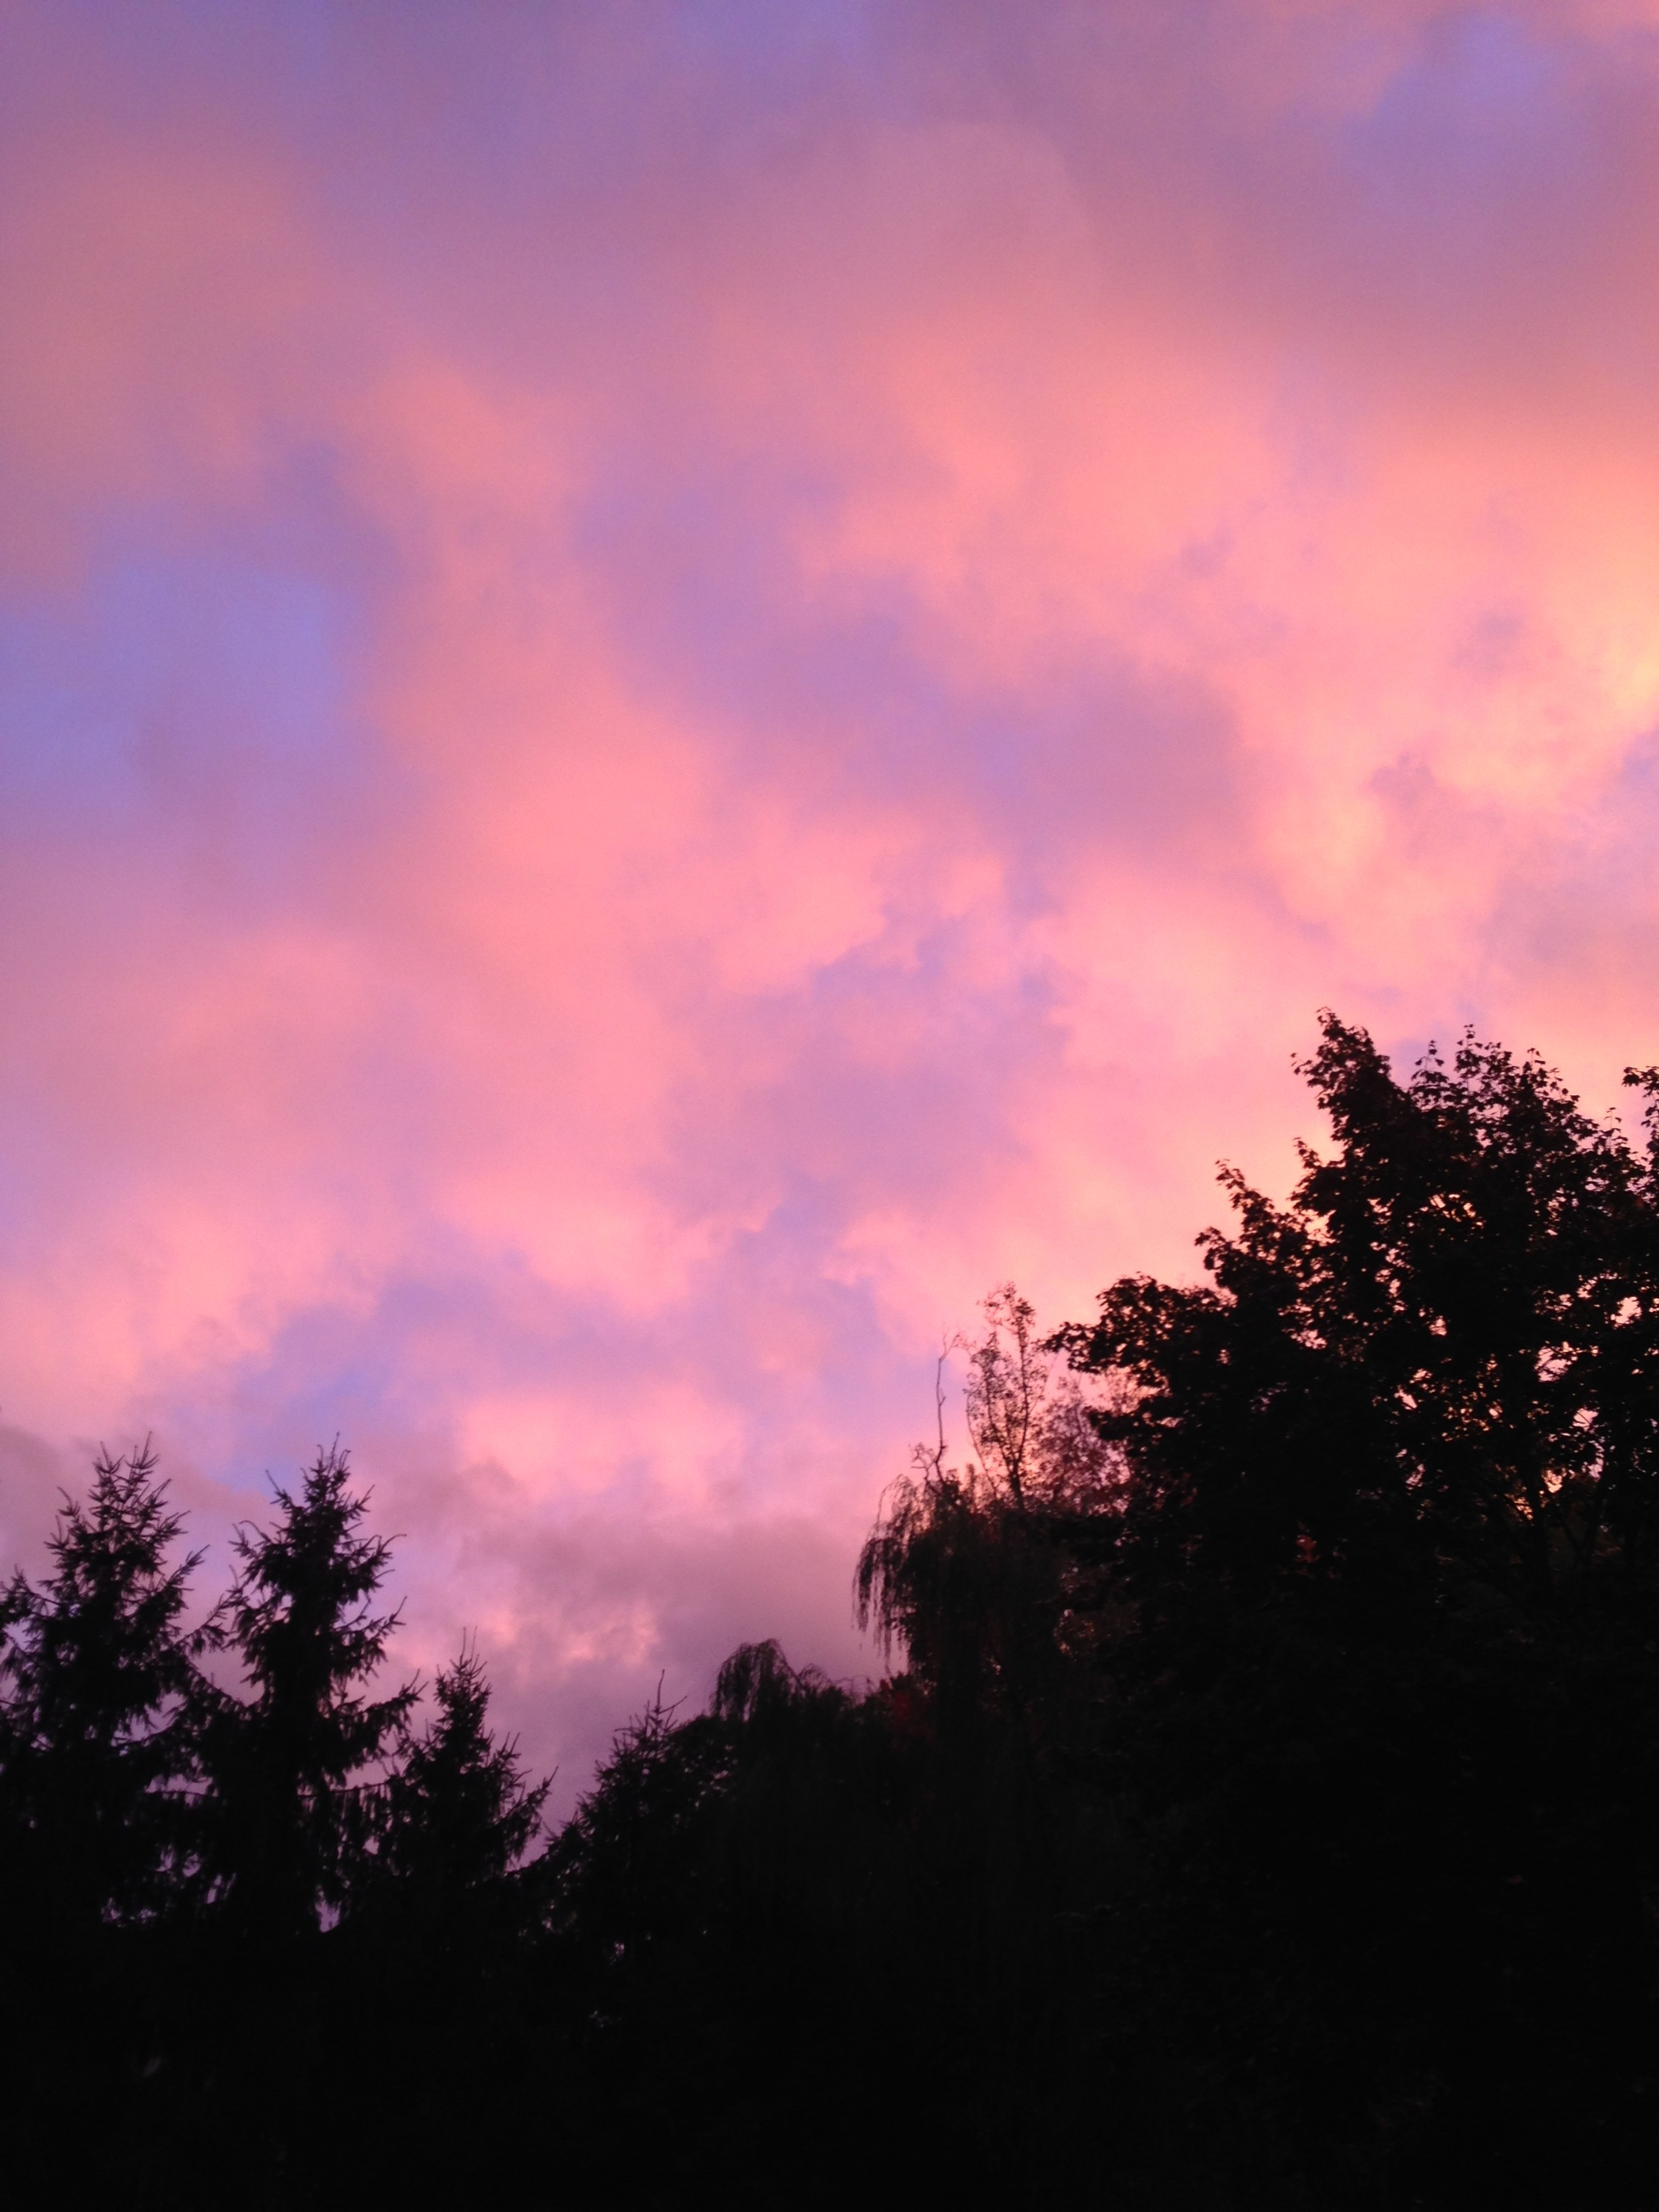 A very colorful October sky after a storm on Oct. 7 PHOTO/Jessica Wrixon